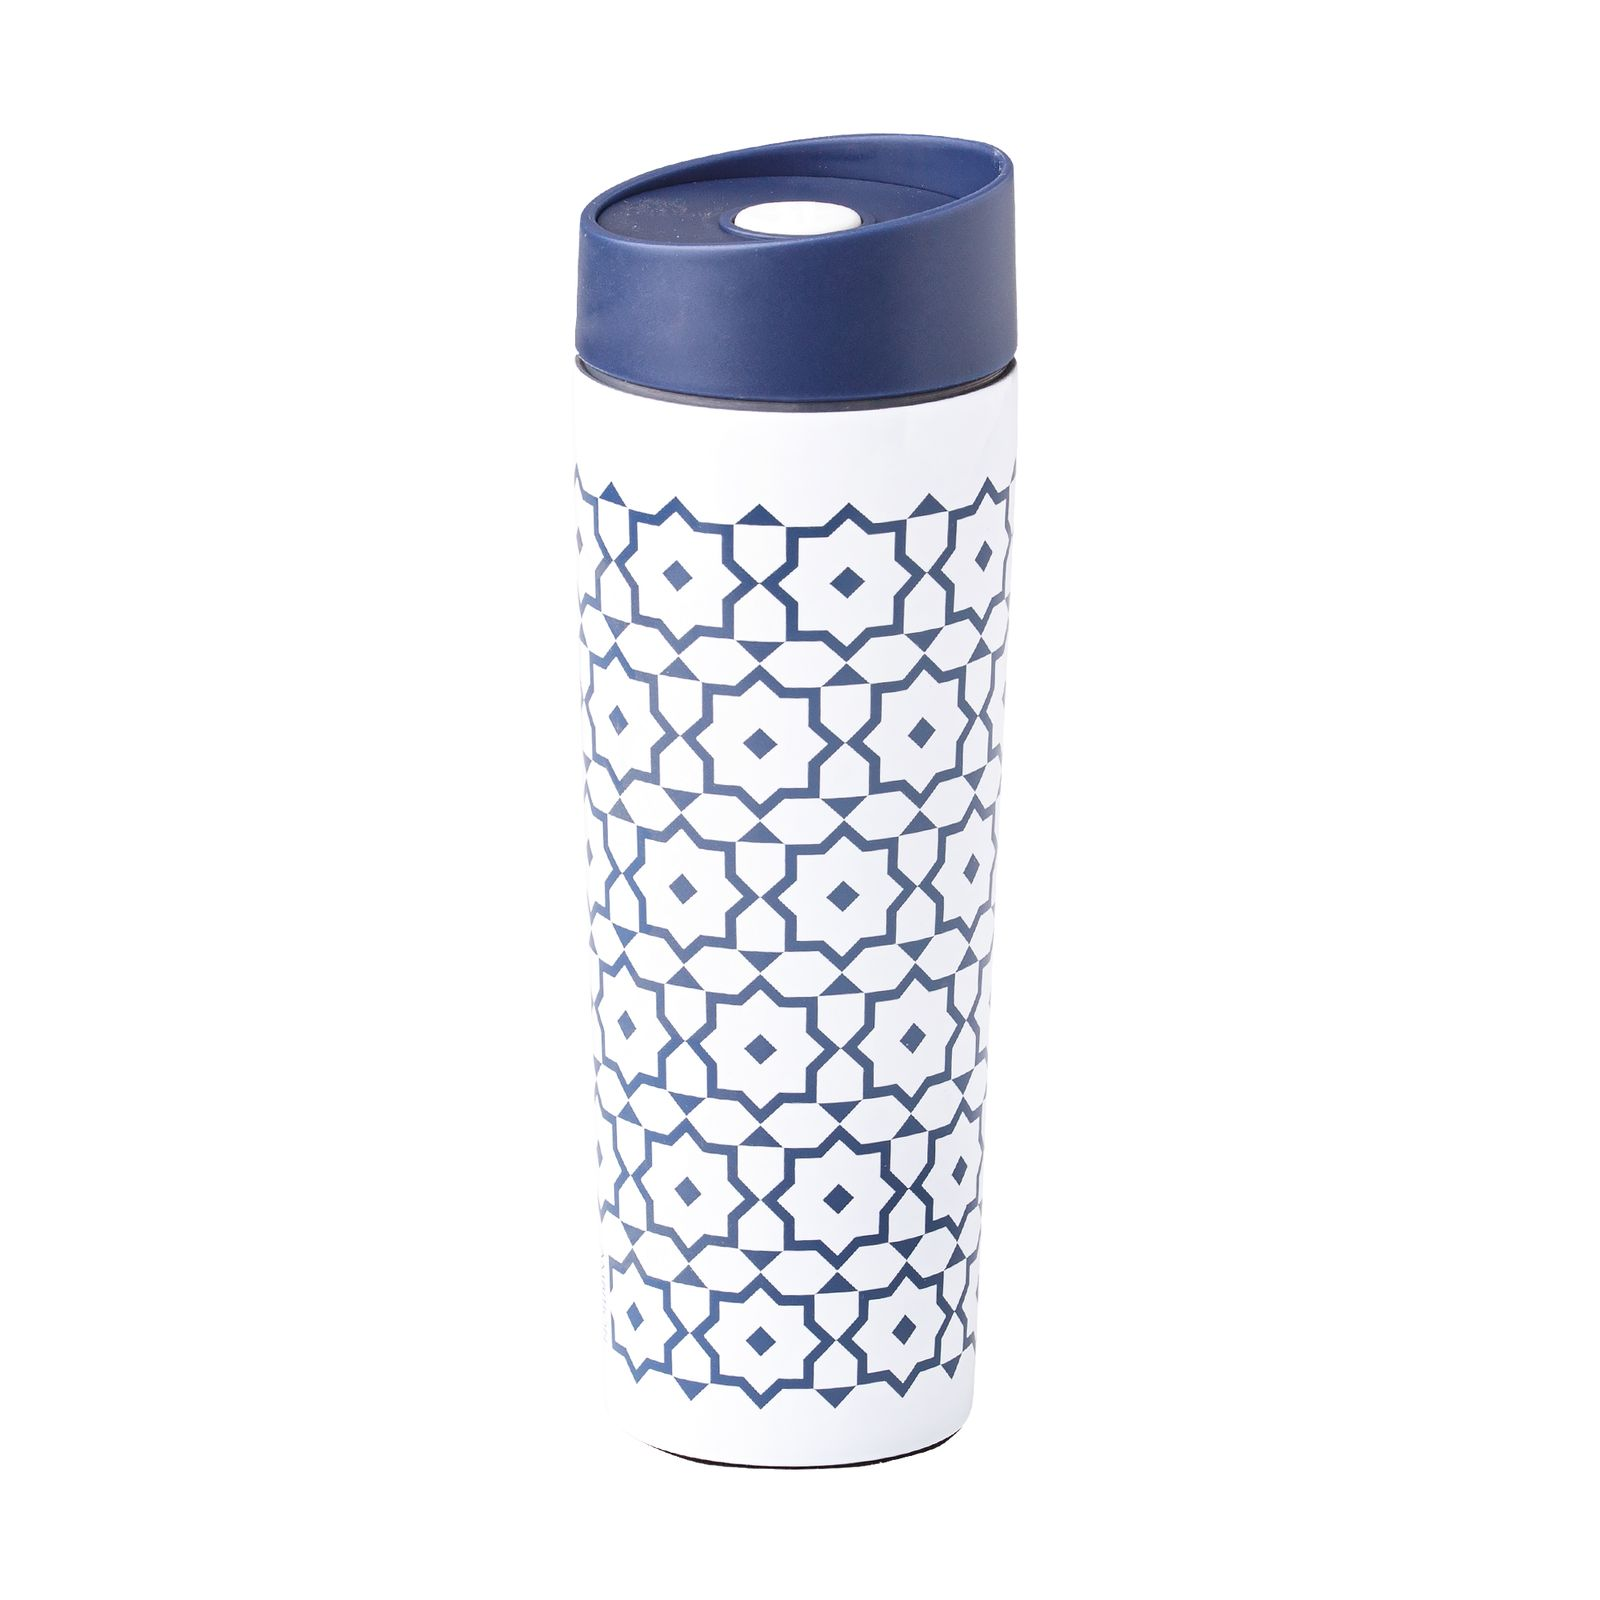 Tasse isotherme Marocco blue navy 34 cl AMBITION